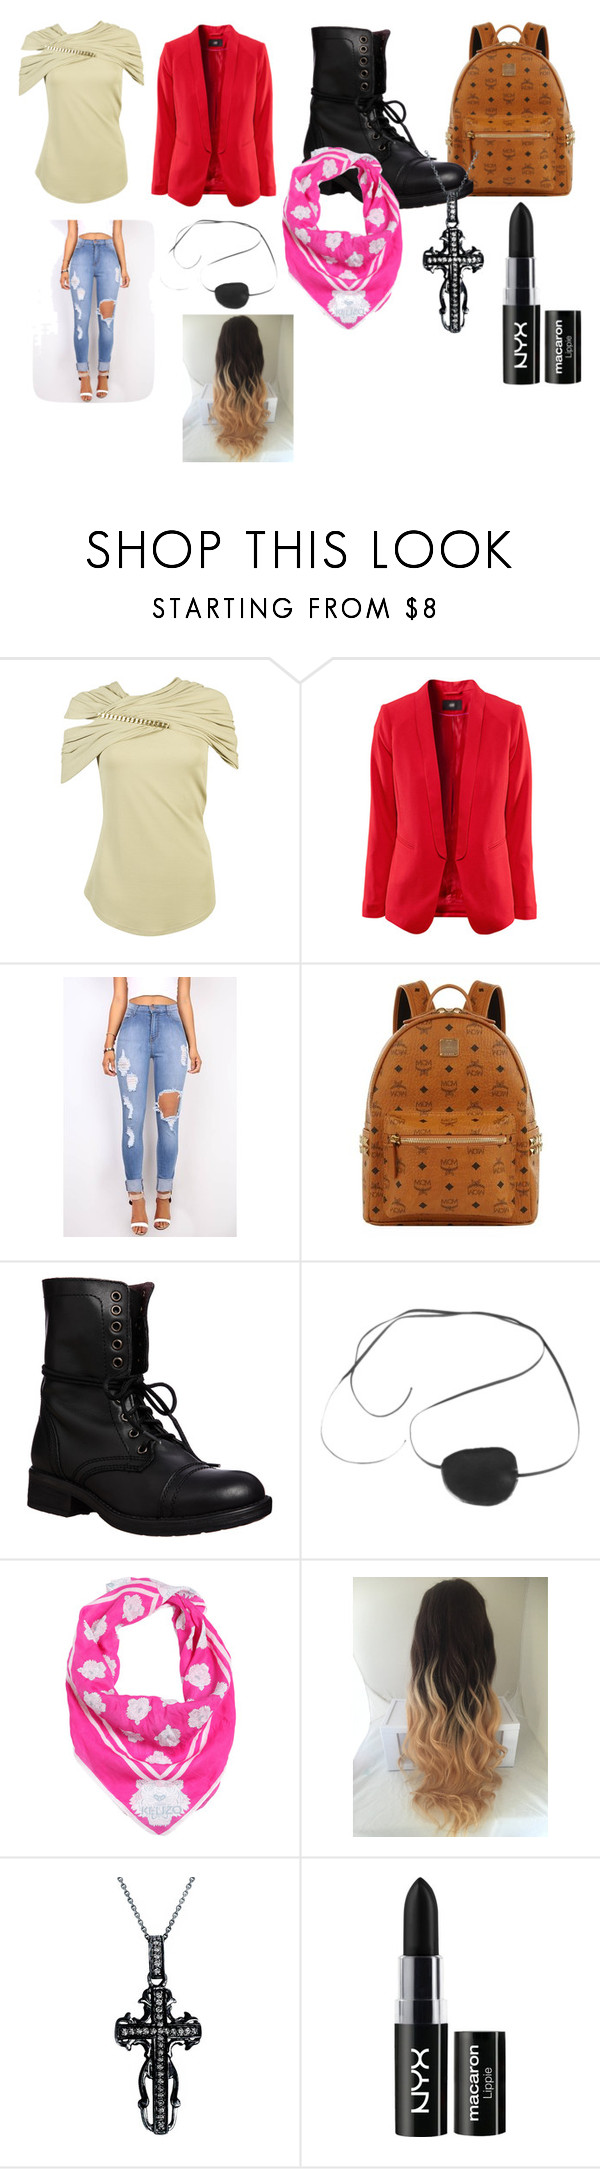 """Your Pirate Outfit"" by lizzie12304 on Polyvore featuring Givenchy, MCM, Steve Madden, Ciel, Kenzo, Mystic Light, NYX, men's fashion and menswear"